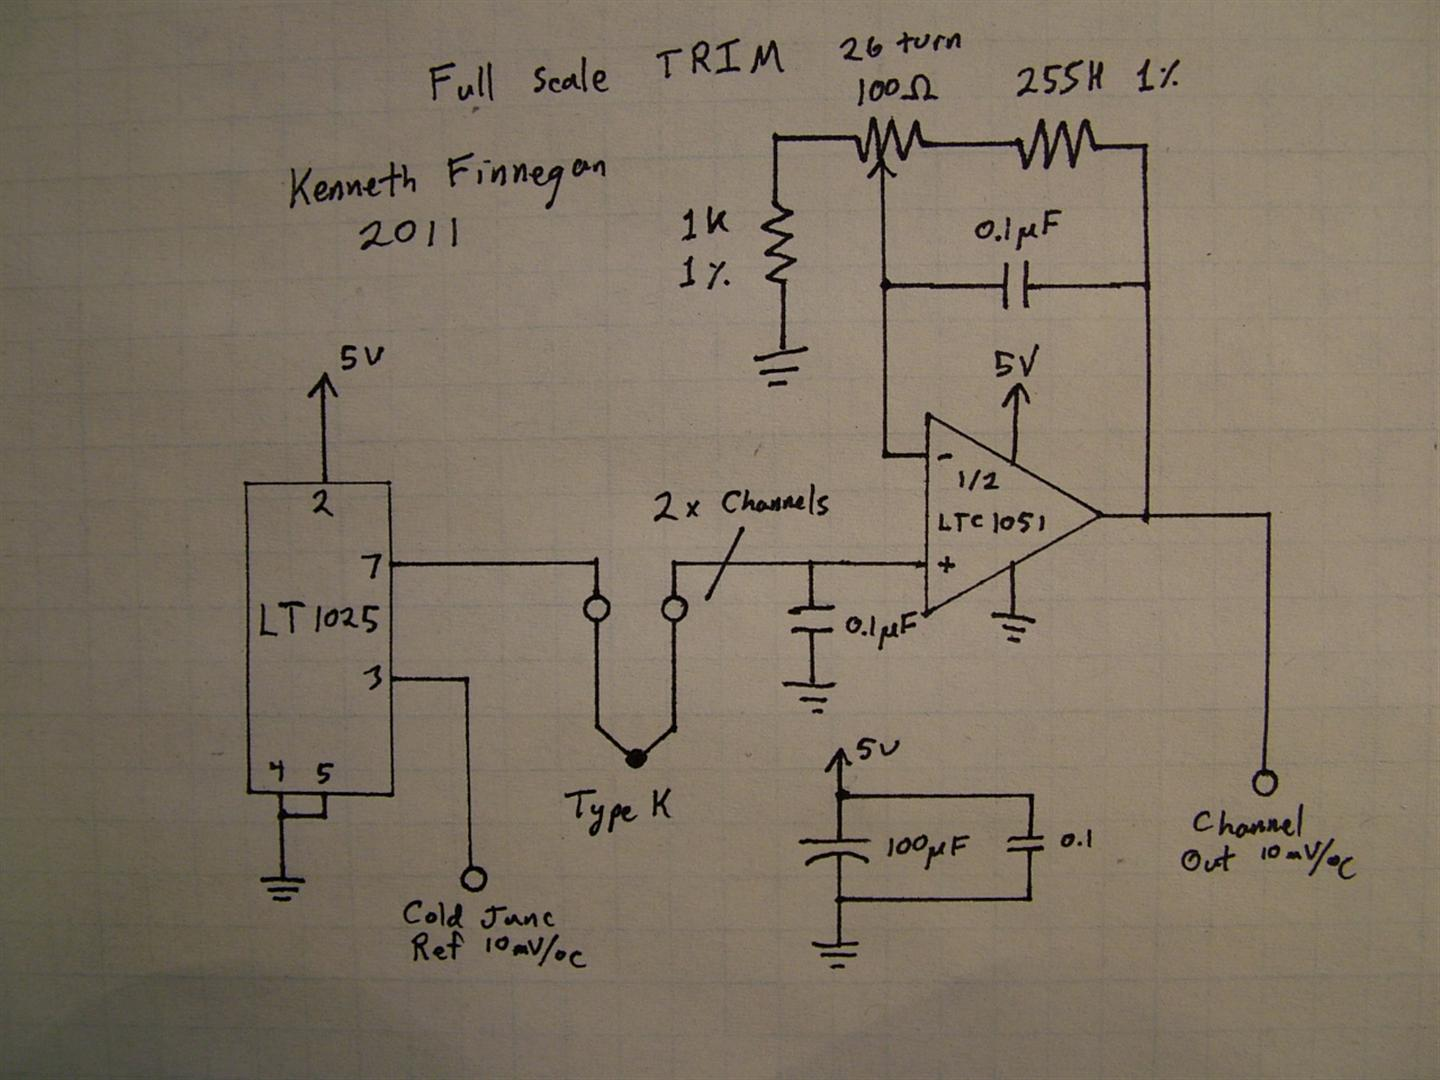 the life of kenneth simple thermocouple amplifier rh blog thelifeofkenneth com